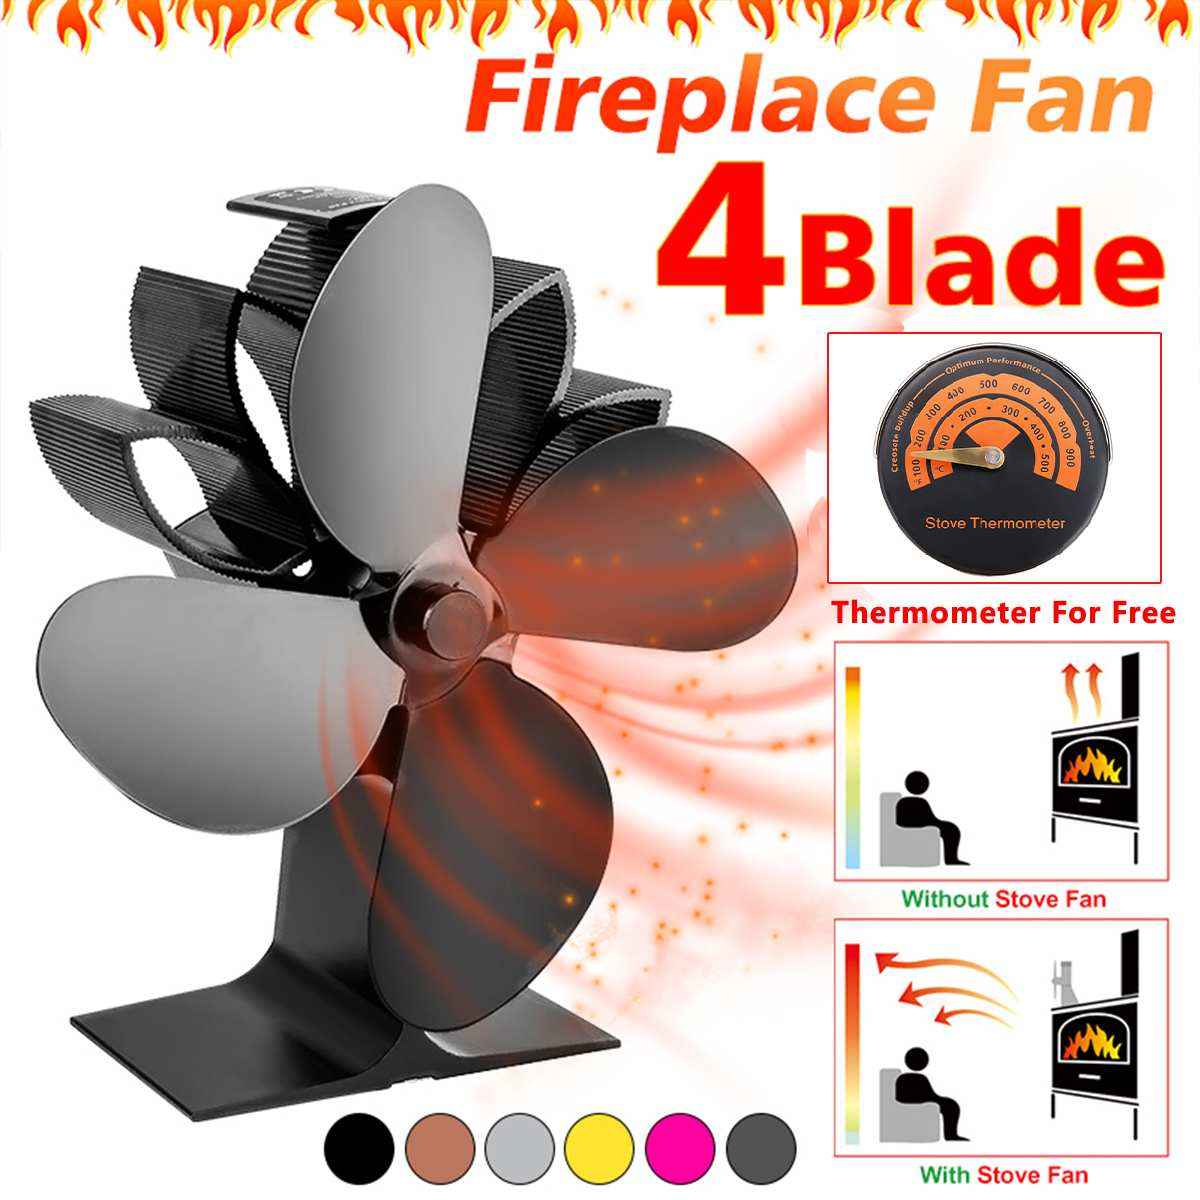 Efficient 4 Blade Heat Powered Stove Fan With Thermometer Log Wood Burner Ecofan Quiet Black Home Fireplace Fan Heat Distributio